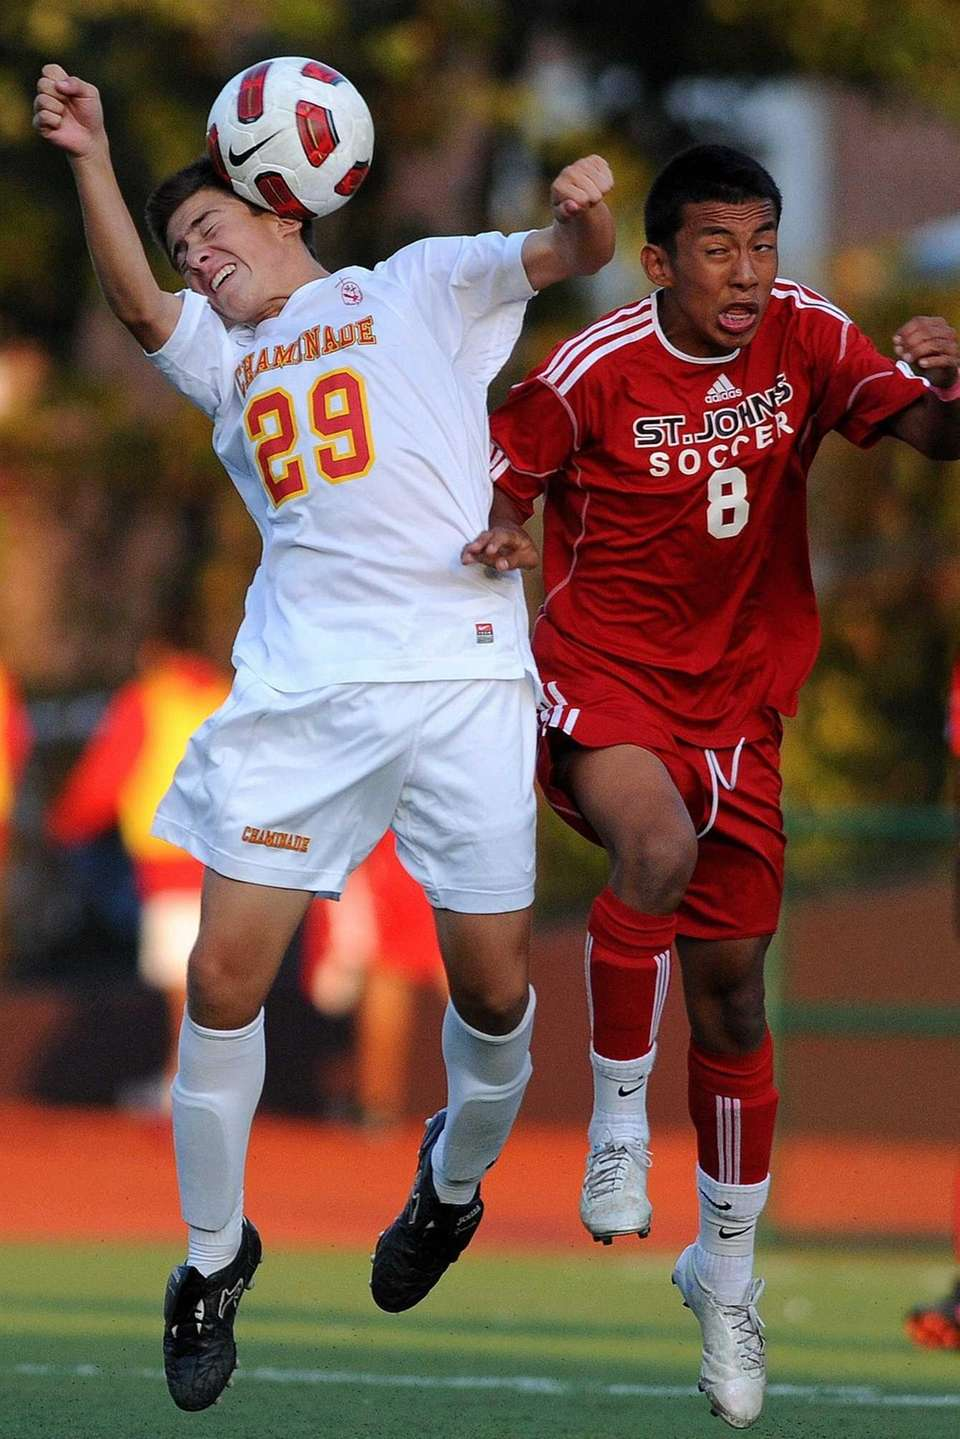 Chaminade's Danilo Lozada, left, heads a ball away